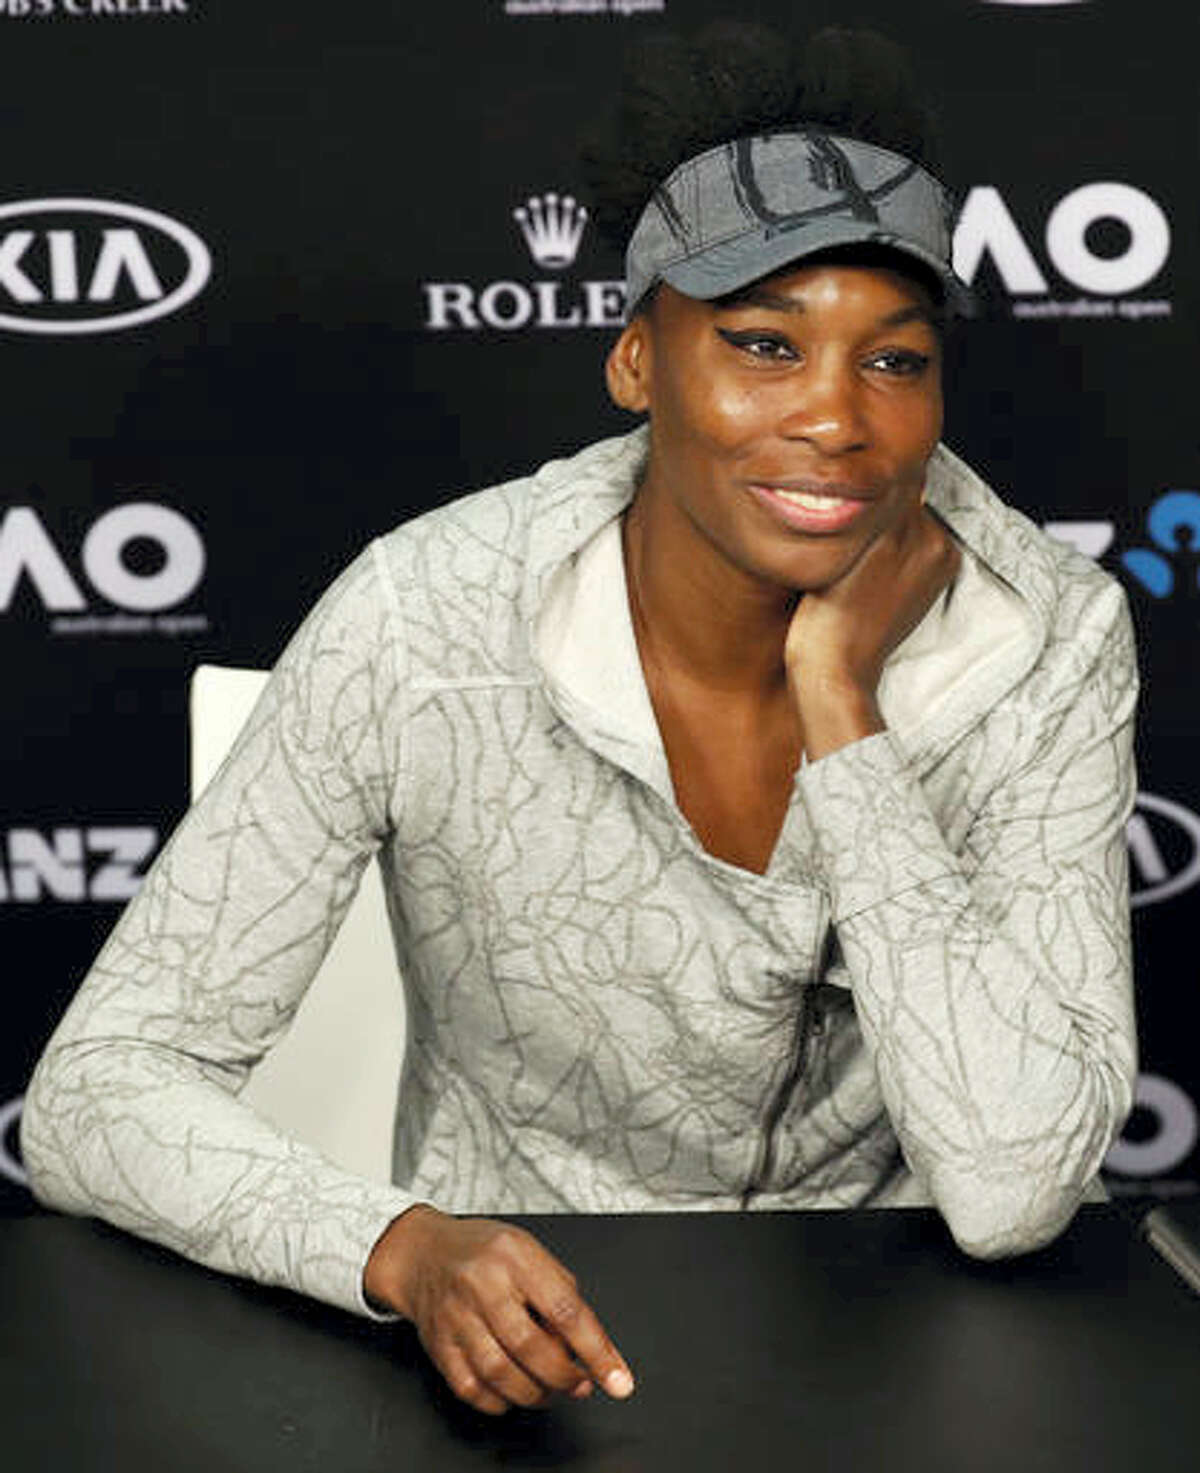 In this Jan. 28, 2017 photo, United States' Venus Williams answers a question at a press conference following her loss to sister Serena in the women's singles final at the Australian Open tennis championships in Melbourne, Australia. Williams will show off her spring tennis clothing line at Madison Square Garden. The EleVen by Venus collection will be worn by ball girls and ushers at the BNP Paribas Showdown on Monday, March 6. Williams will also play French Open champion Garbine Muguruza in the exhibition.